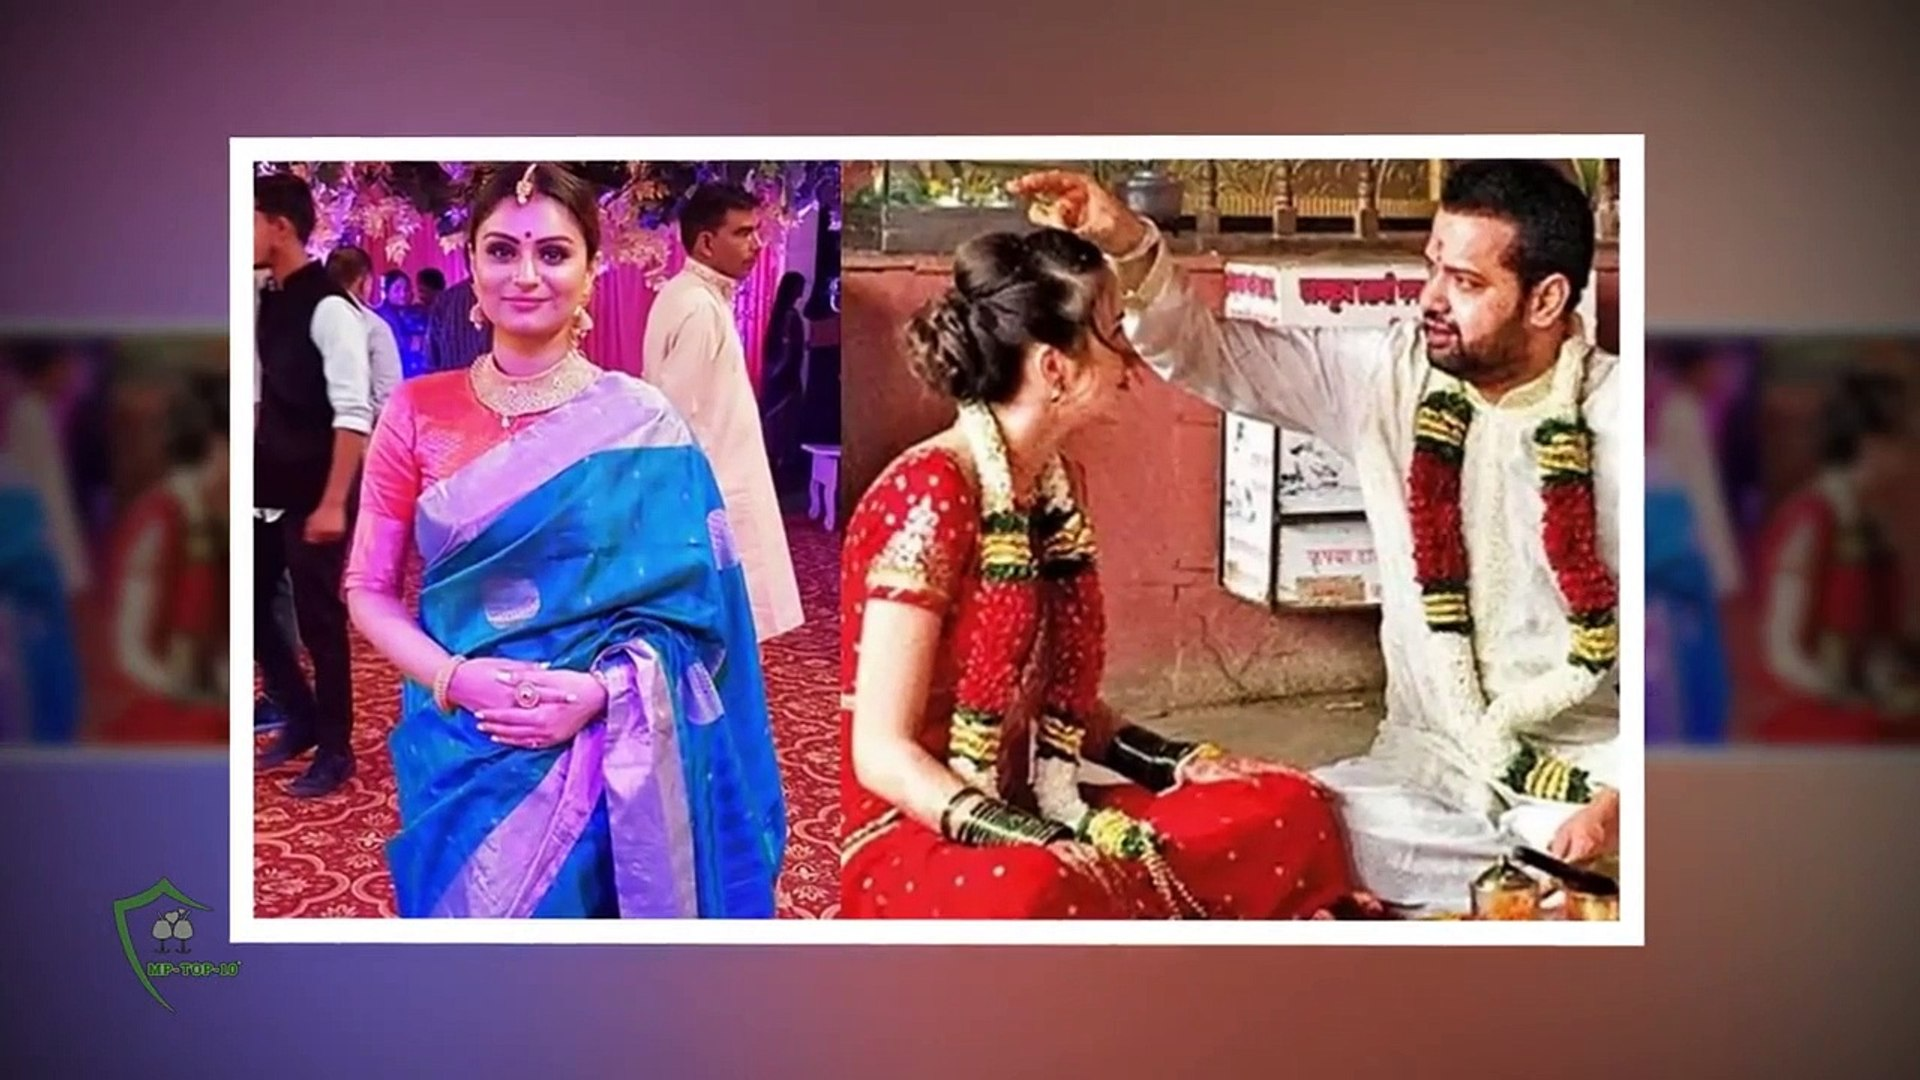 34yrs Rahul Mahajan Ties the Knot For Third Time With 25yrs Model Natalya Ilina